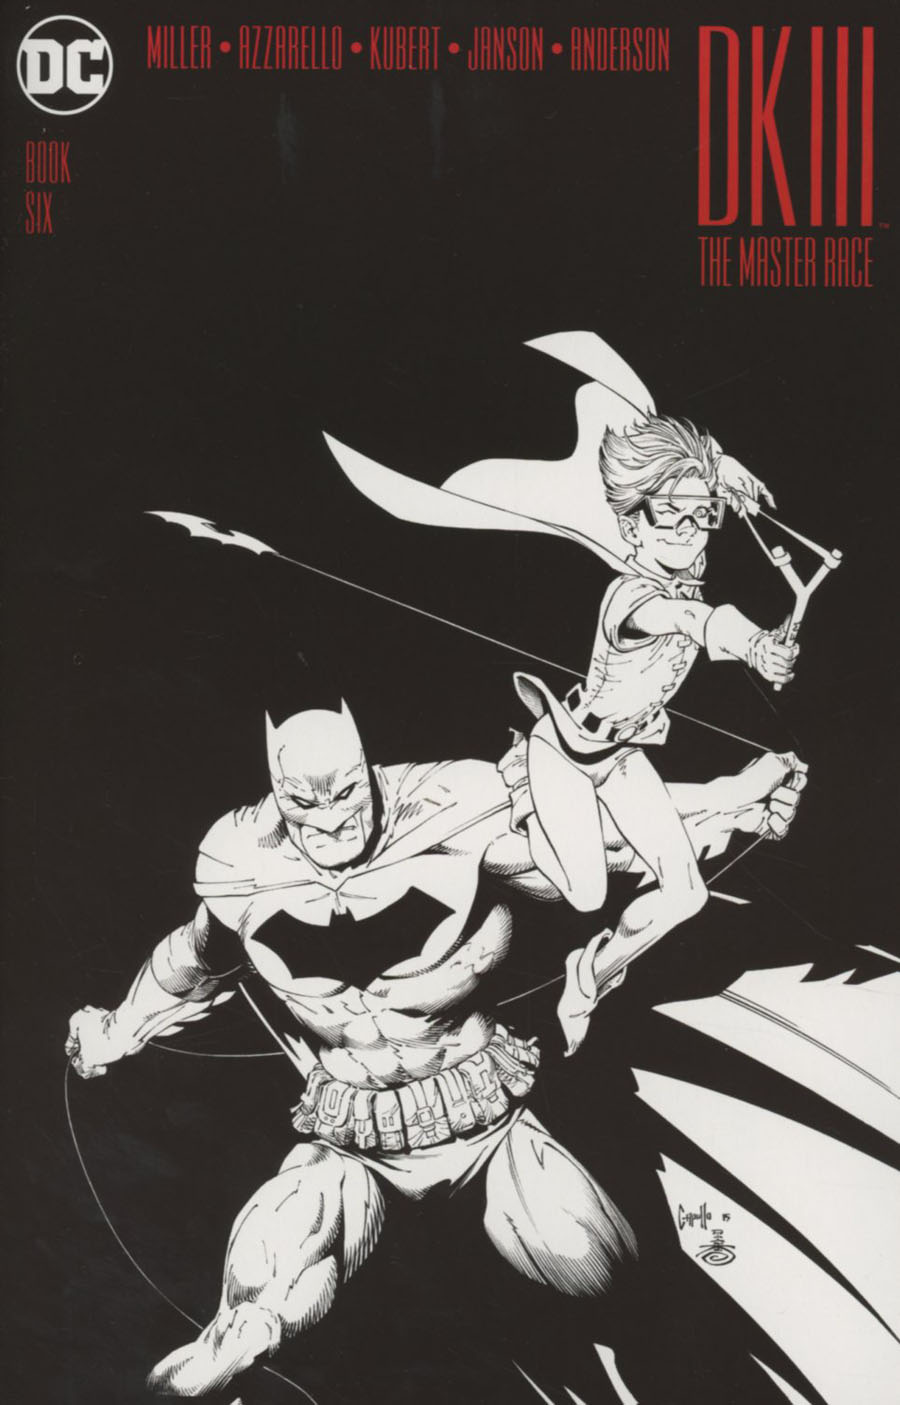 Dark Knight III The Master Race #6 Cover C Midtown Exclusive Greg Capullo Sketch Variant Cover